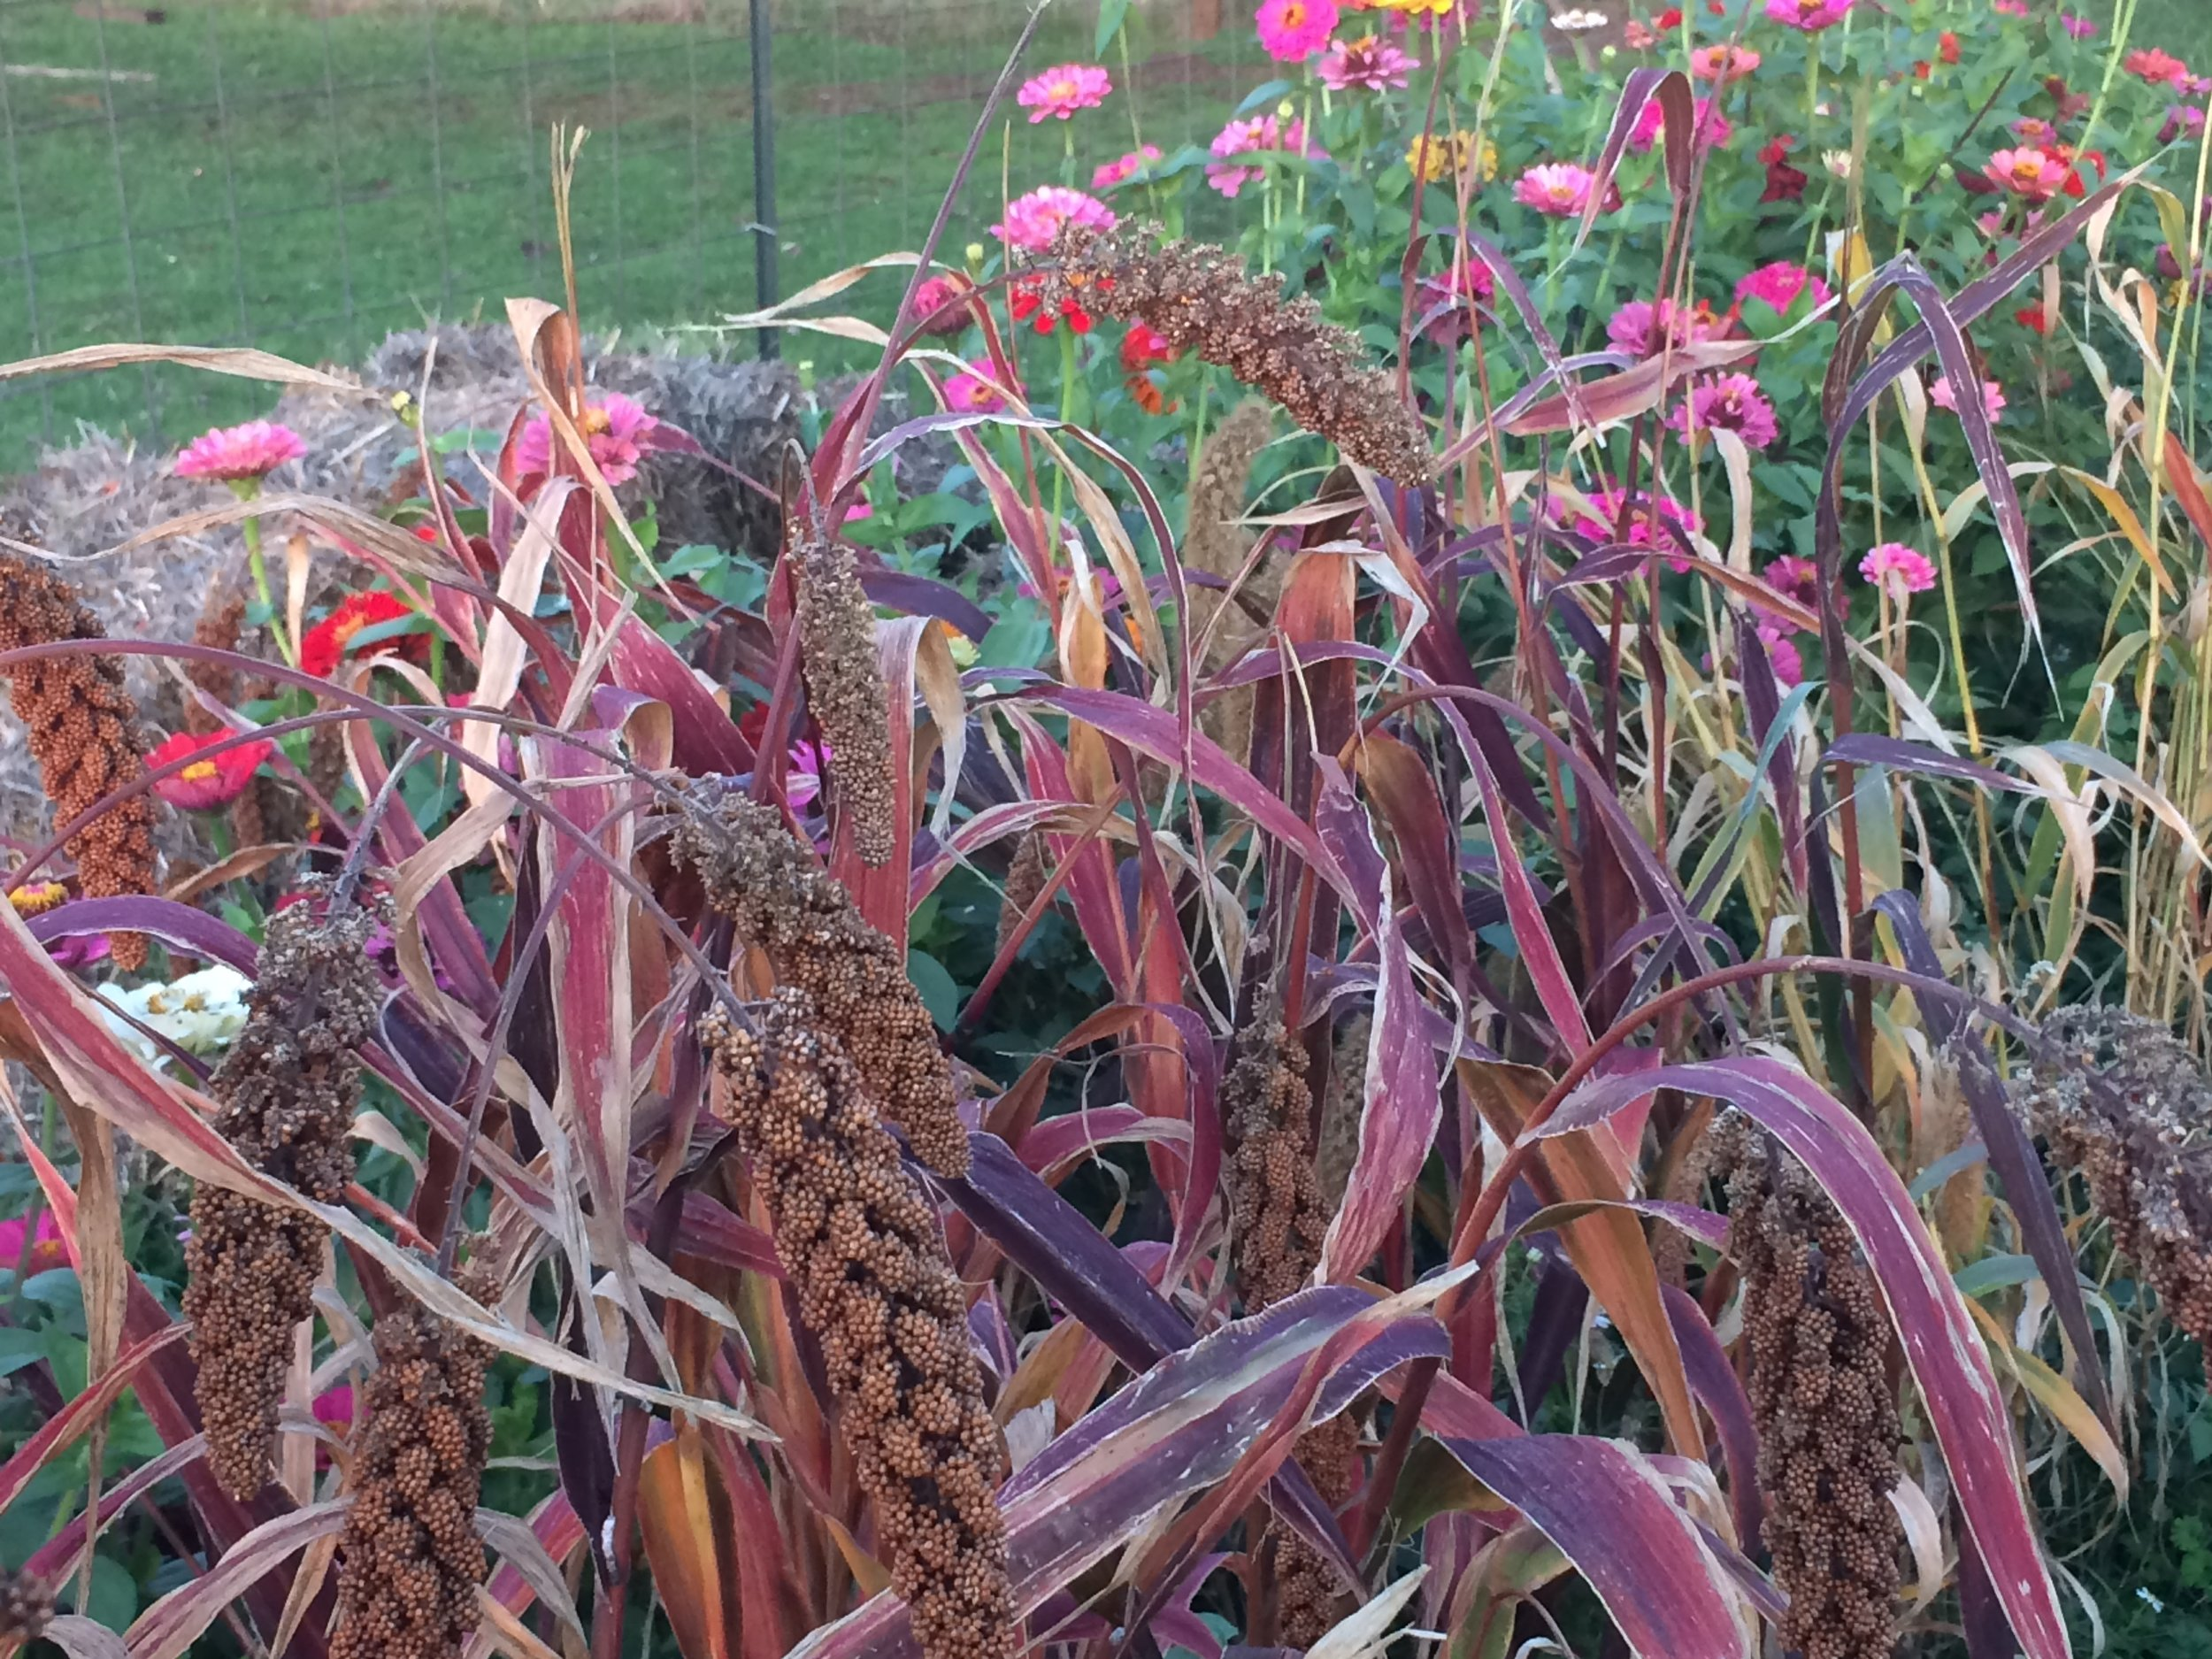 Millet drying on the stalks is then brought in and shaken to save each little seed.